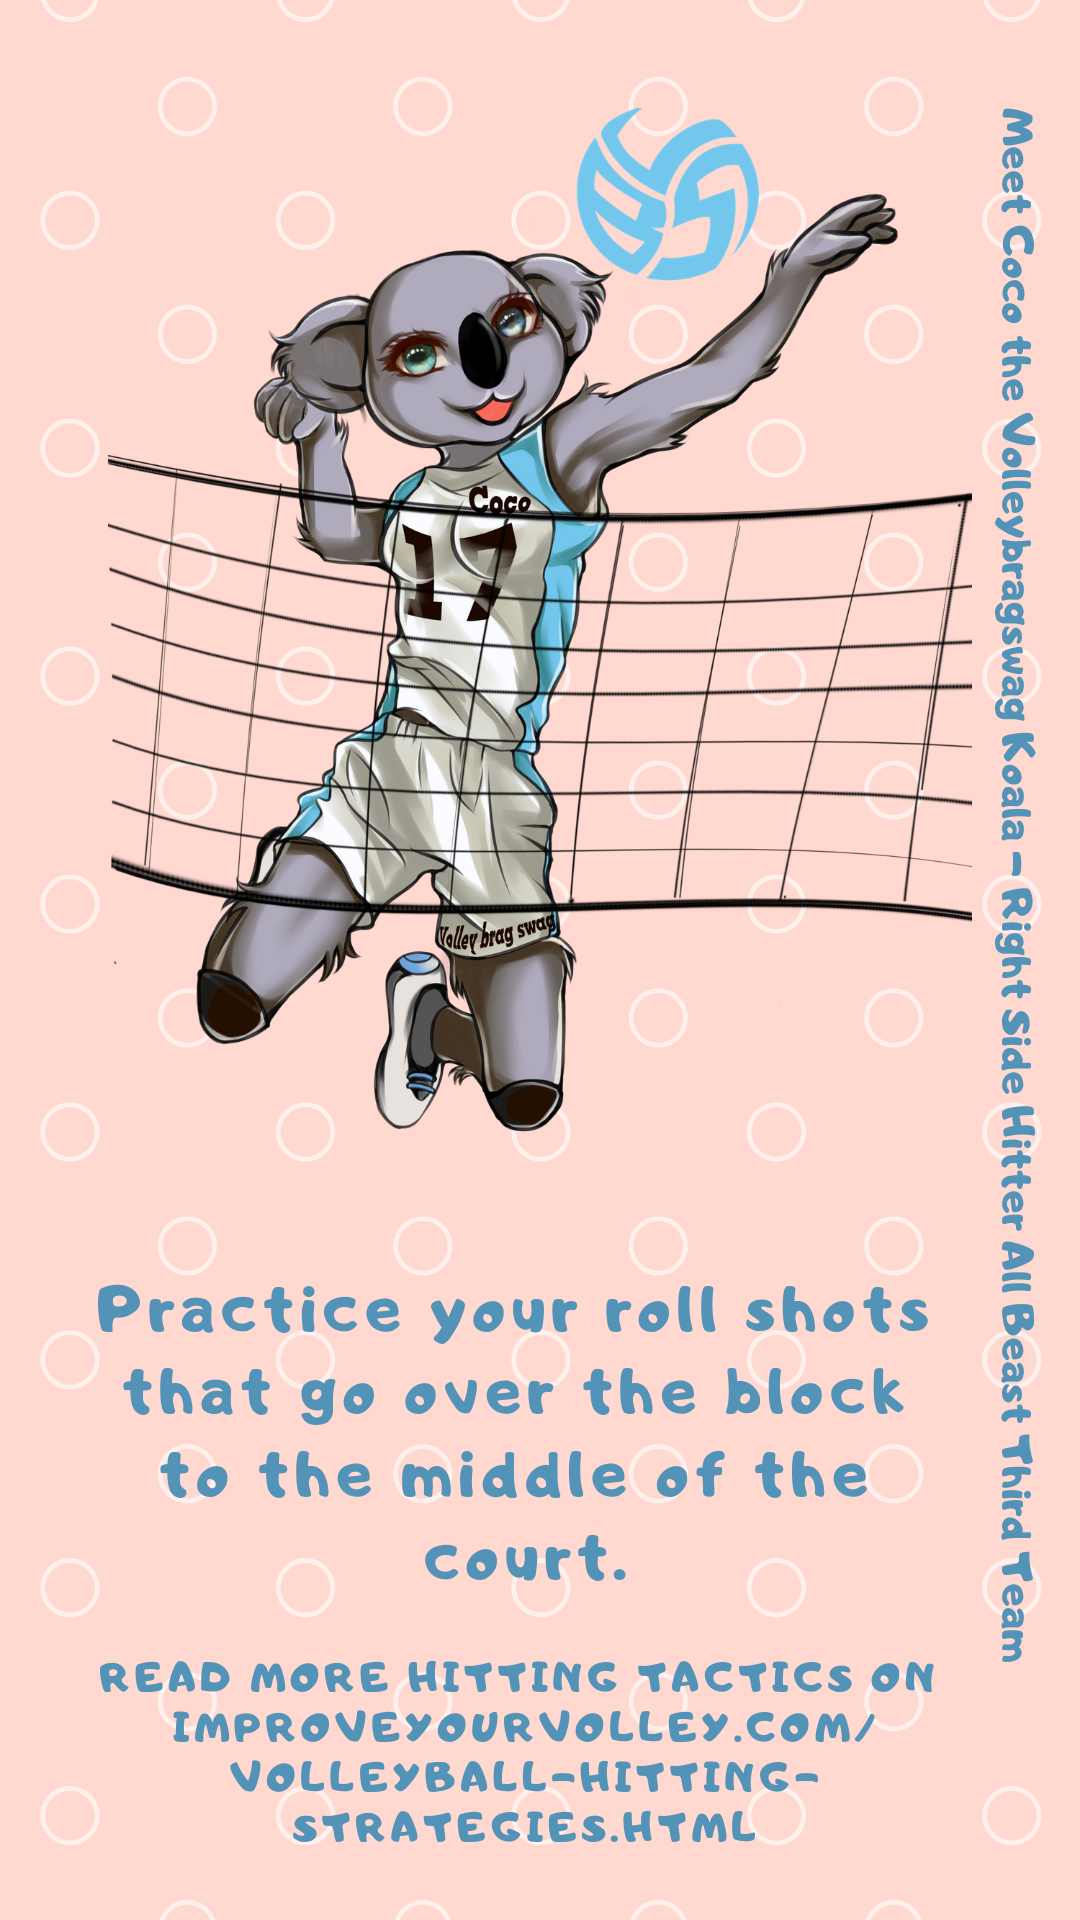 Hitting Tactics: Practice your roll shots that go over the block to the middle of the court.